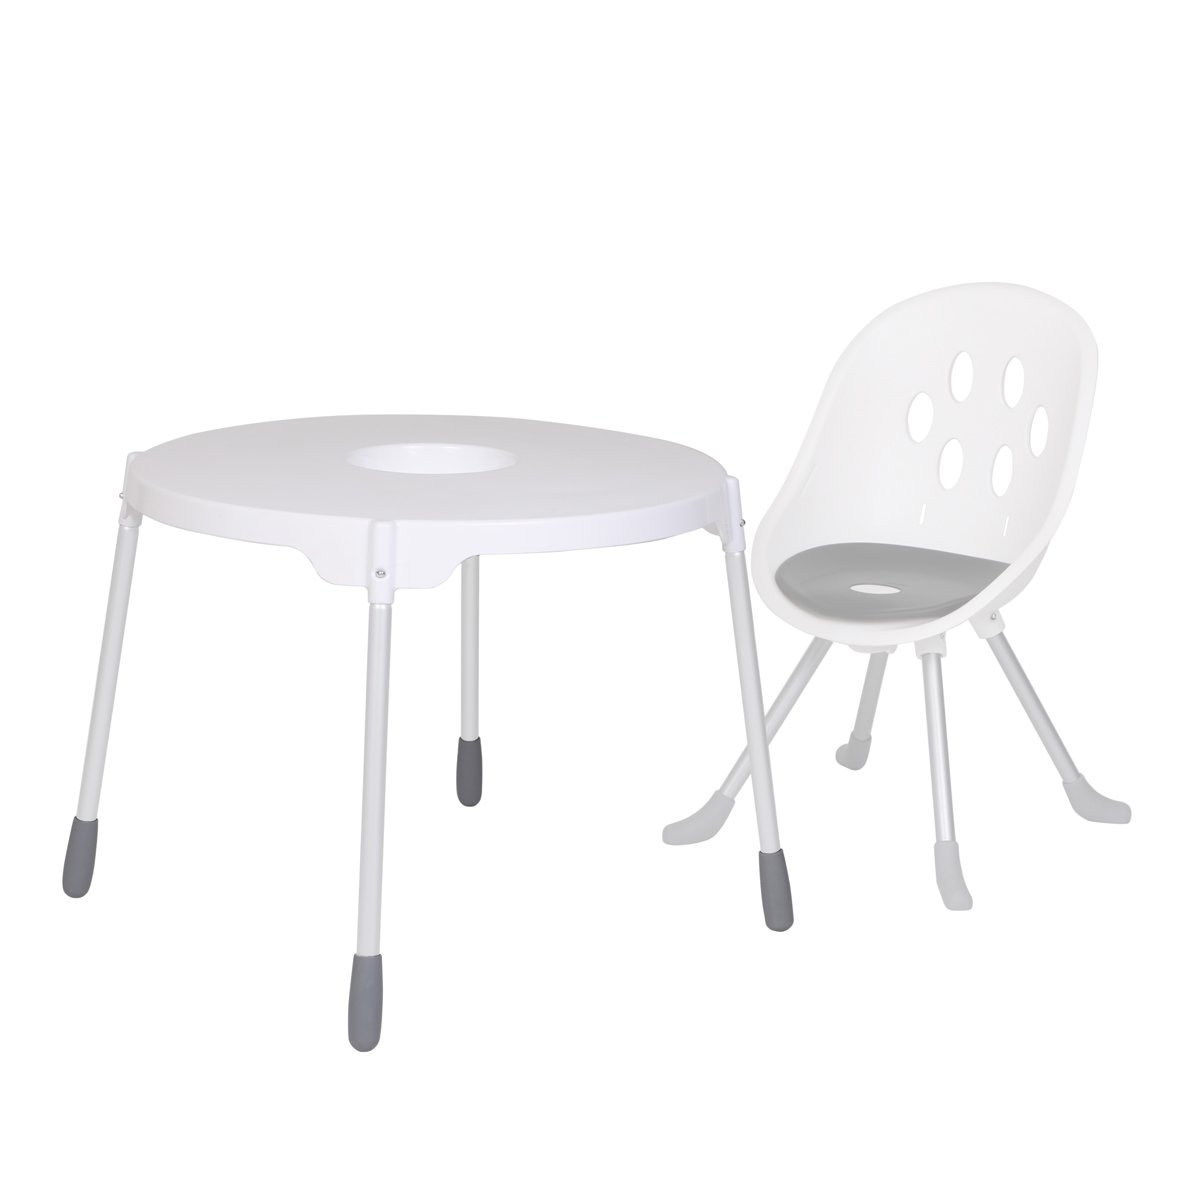 https://cdn.accentuate.io/4560618717218/19437753335986/phil_and_teds_poppy_table_top_with_leg_set_and_poppy_high_chair_1-v1630984522984.jpg?1200x1200